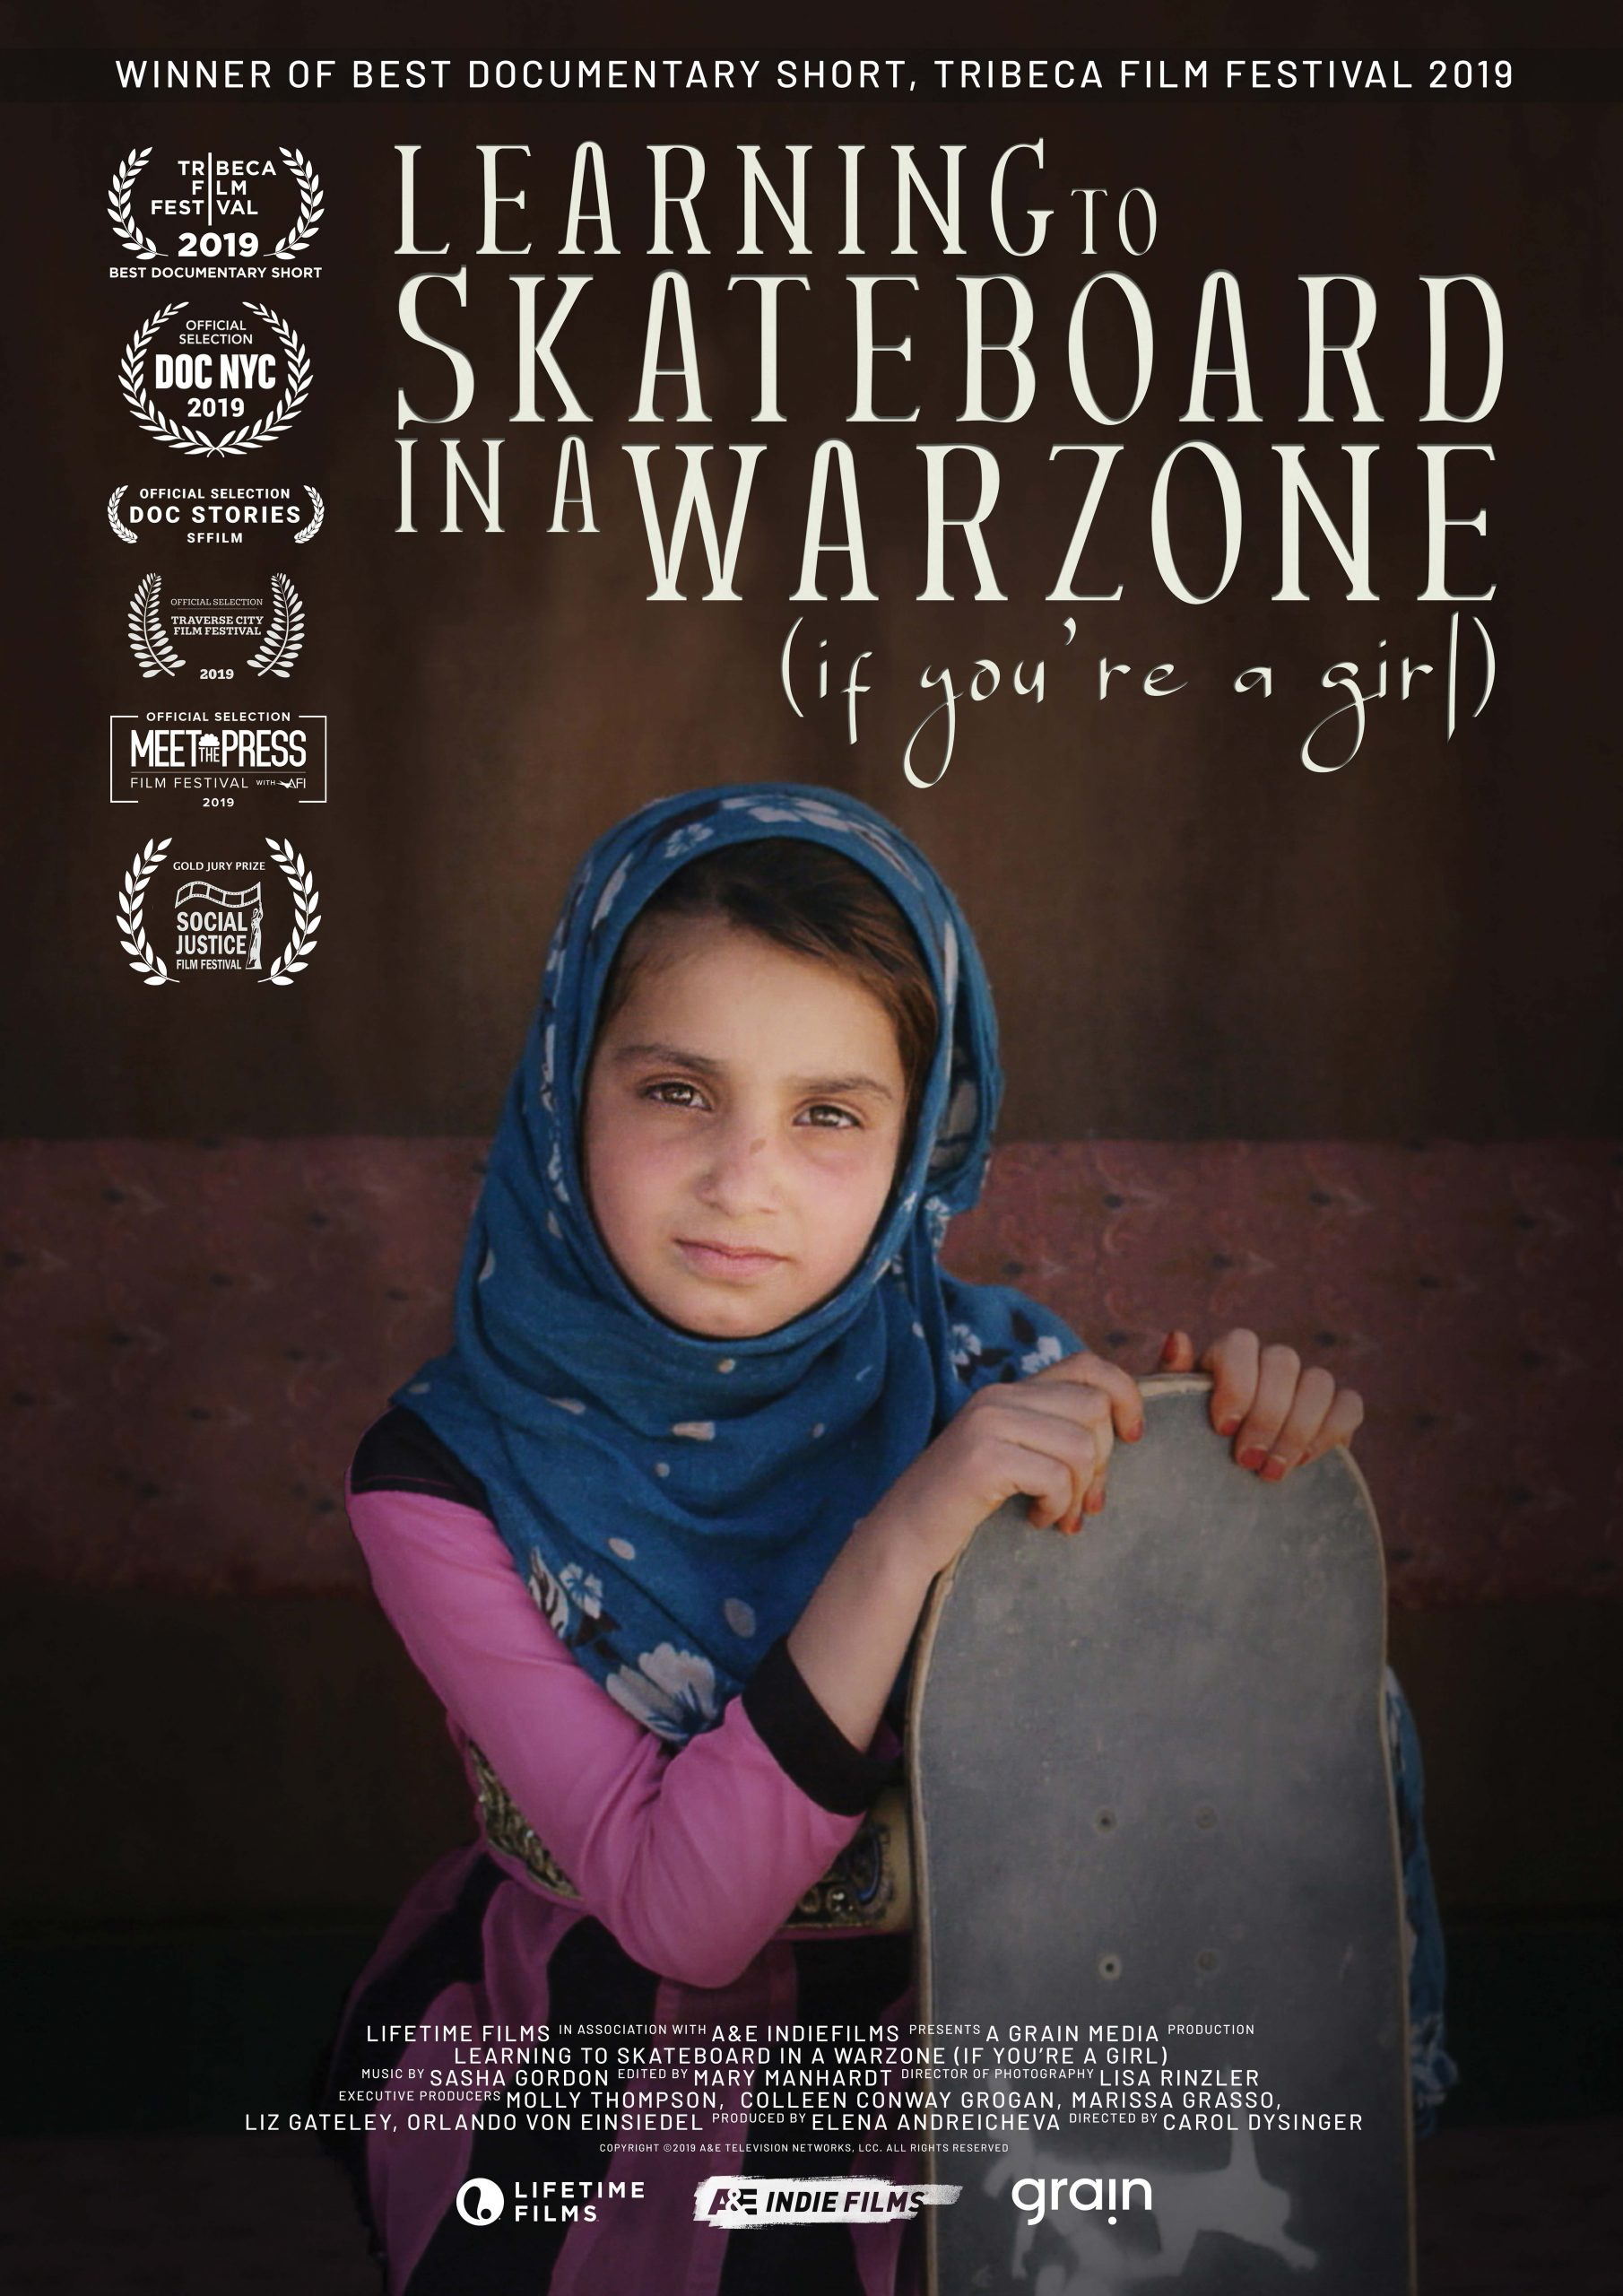 learning-to-skateboard-in-a-warzone-if-youre-a-girl_1